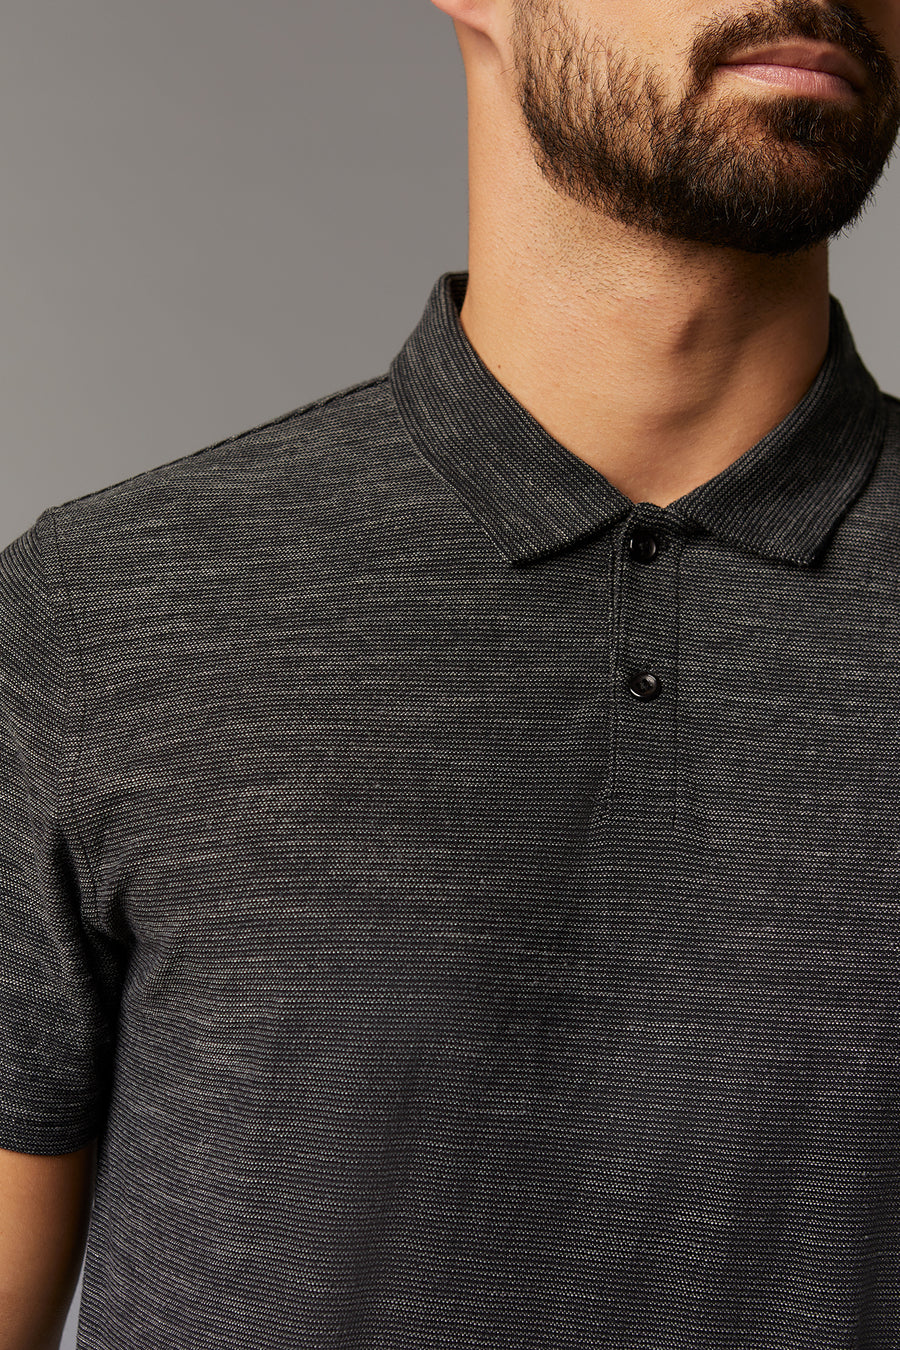 Mike Charcoal Short Sleeve Knit Polo